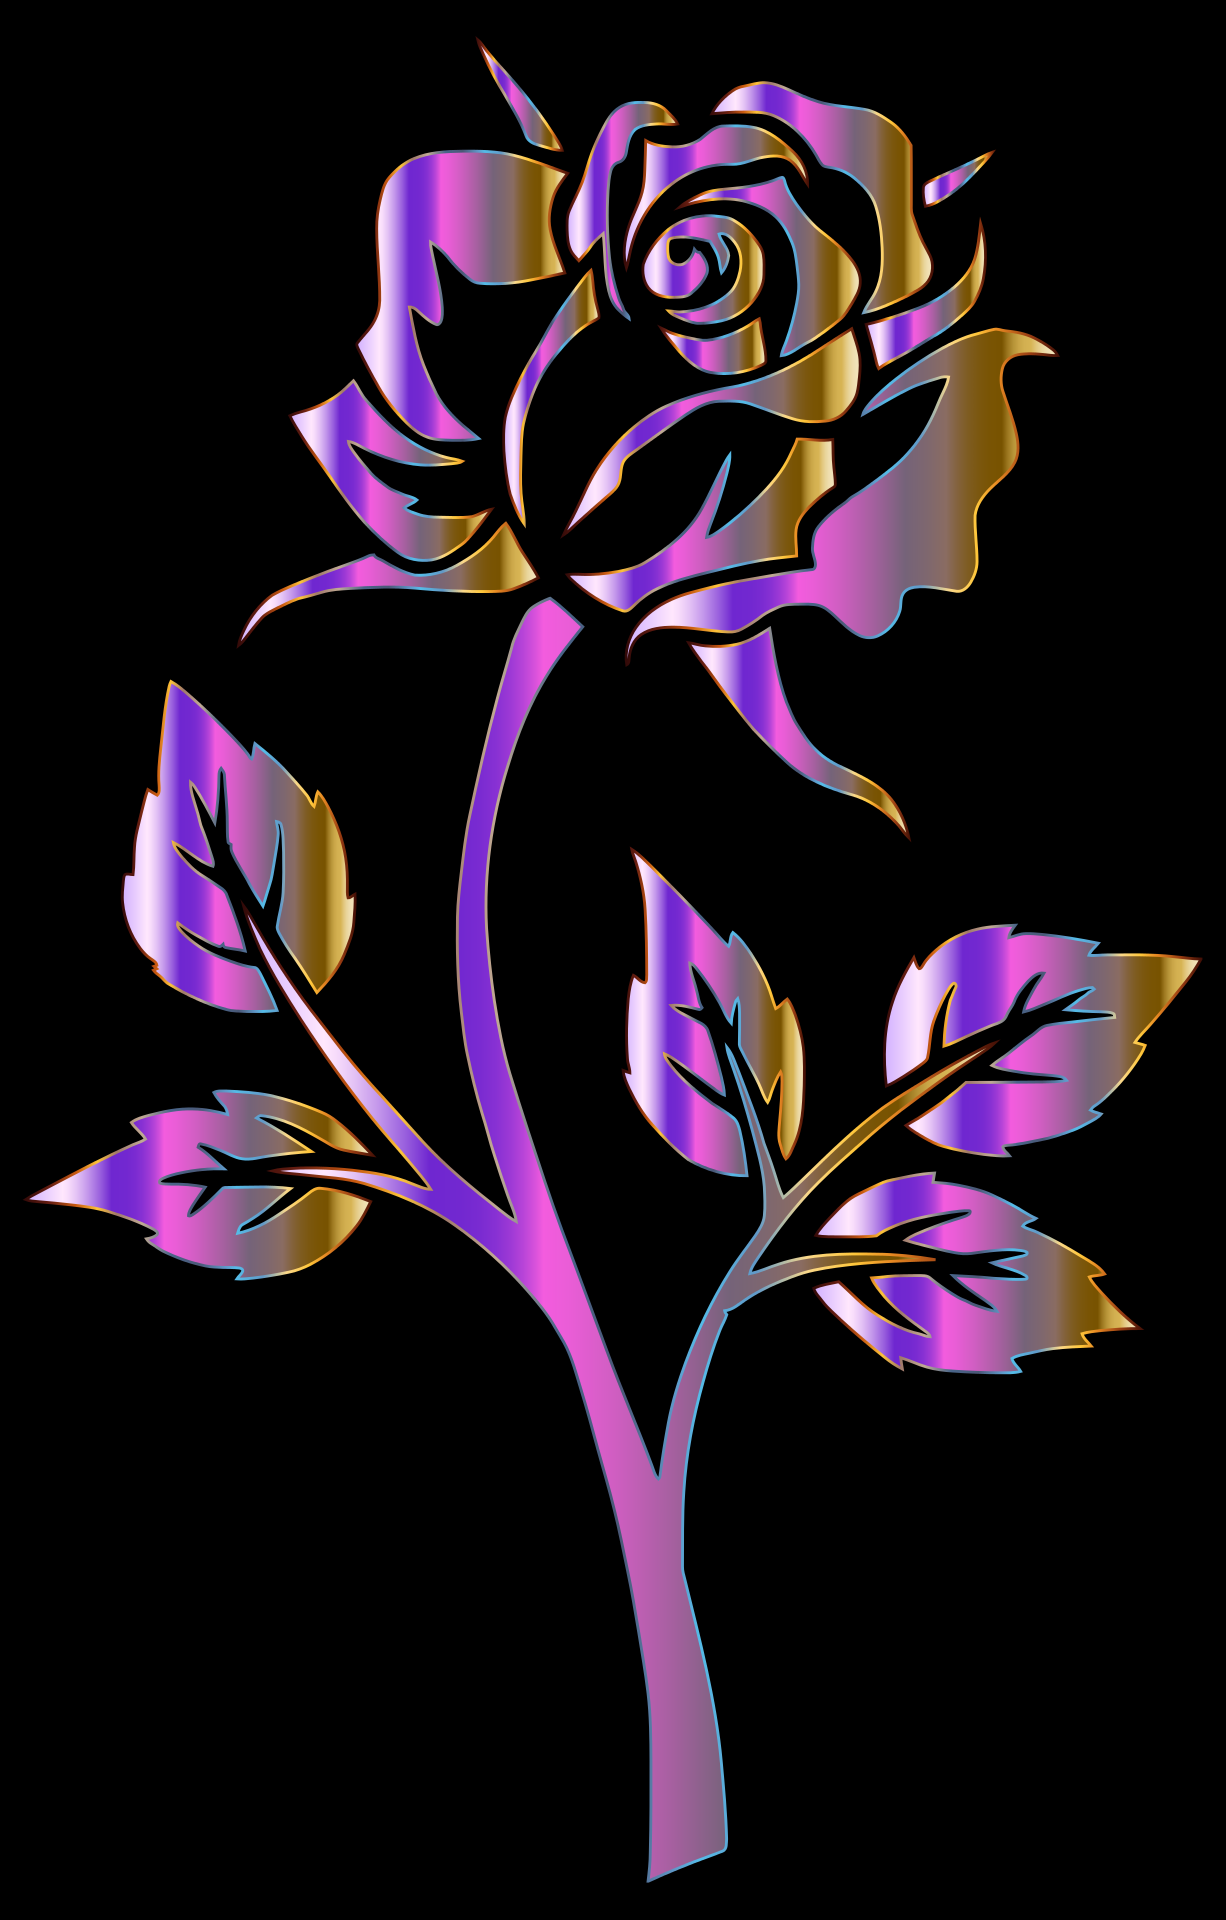 Purple And Black Backgrounds Png - Painted purple rose on black background free image